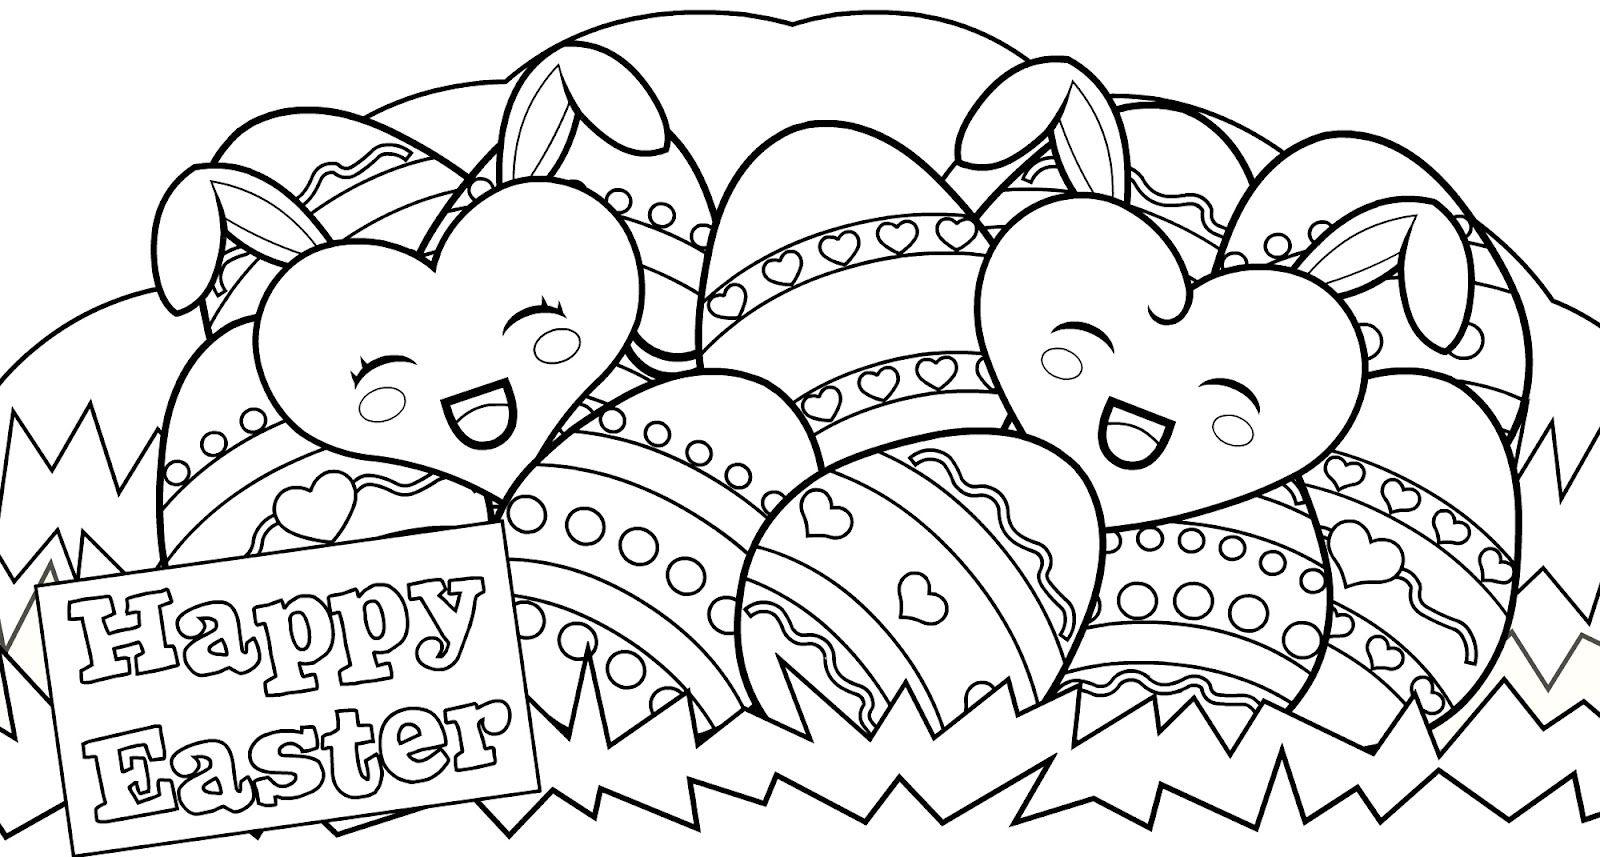 Printable Coloring Pages Easter - Childrenarepresent - Free Printable Easter Colouring Sheets